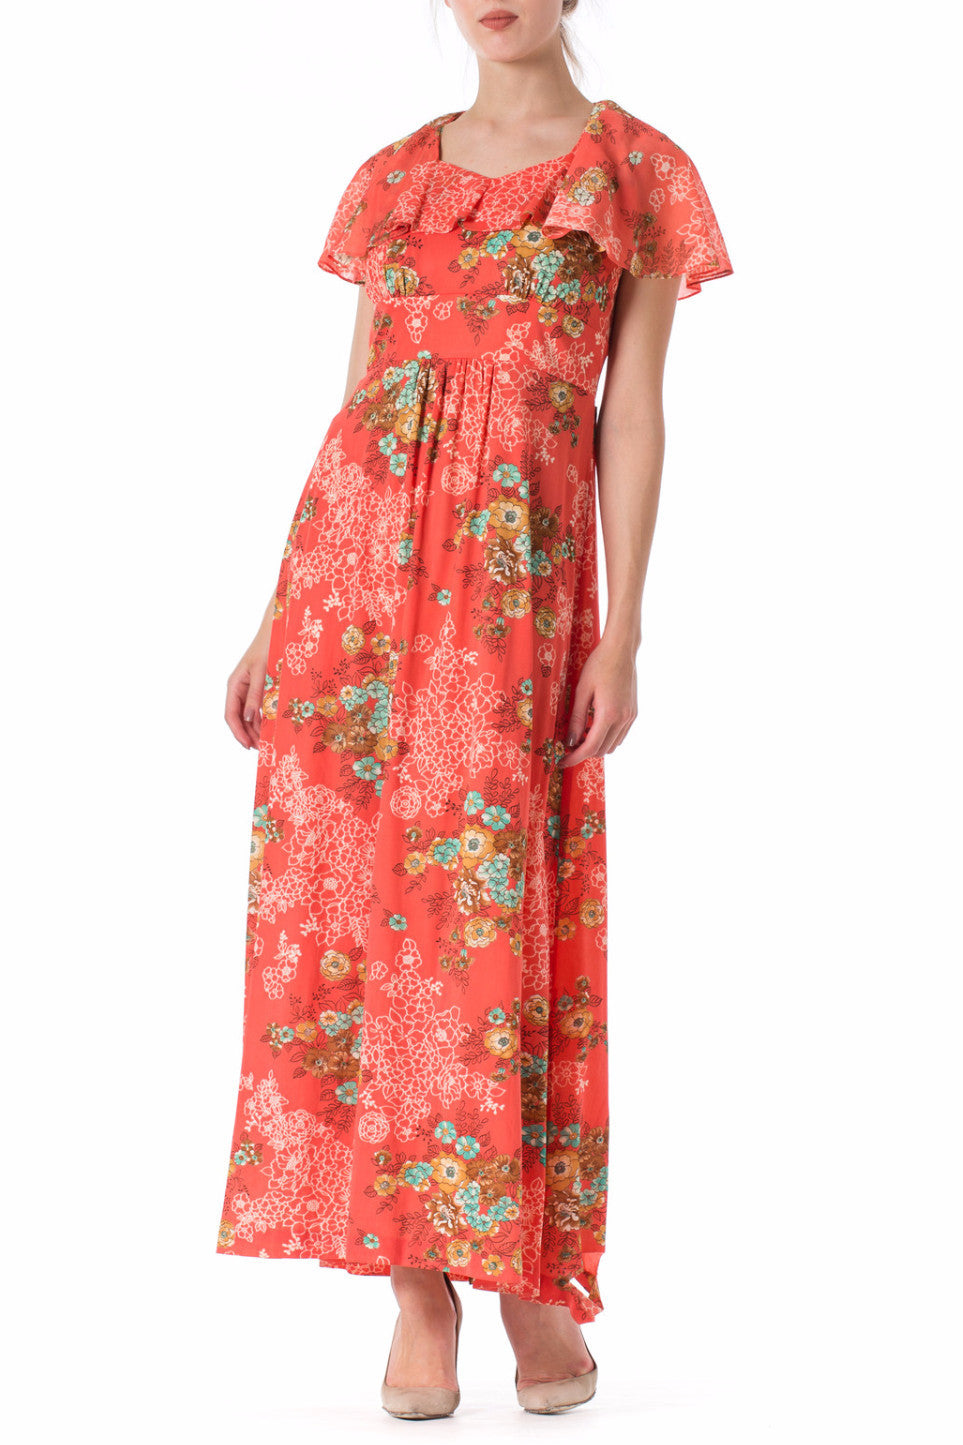 1970s Floral Printed Collar Maxi Summer Dress